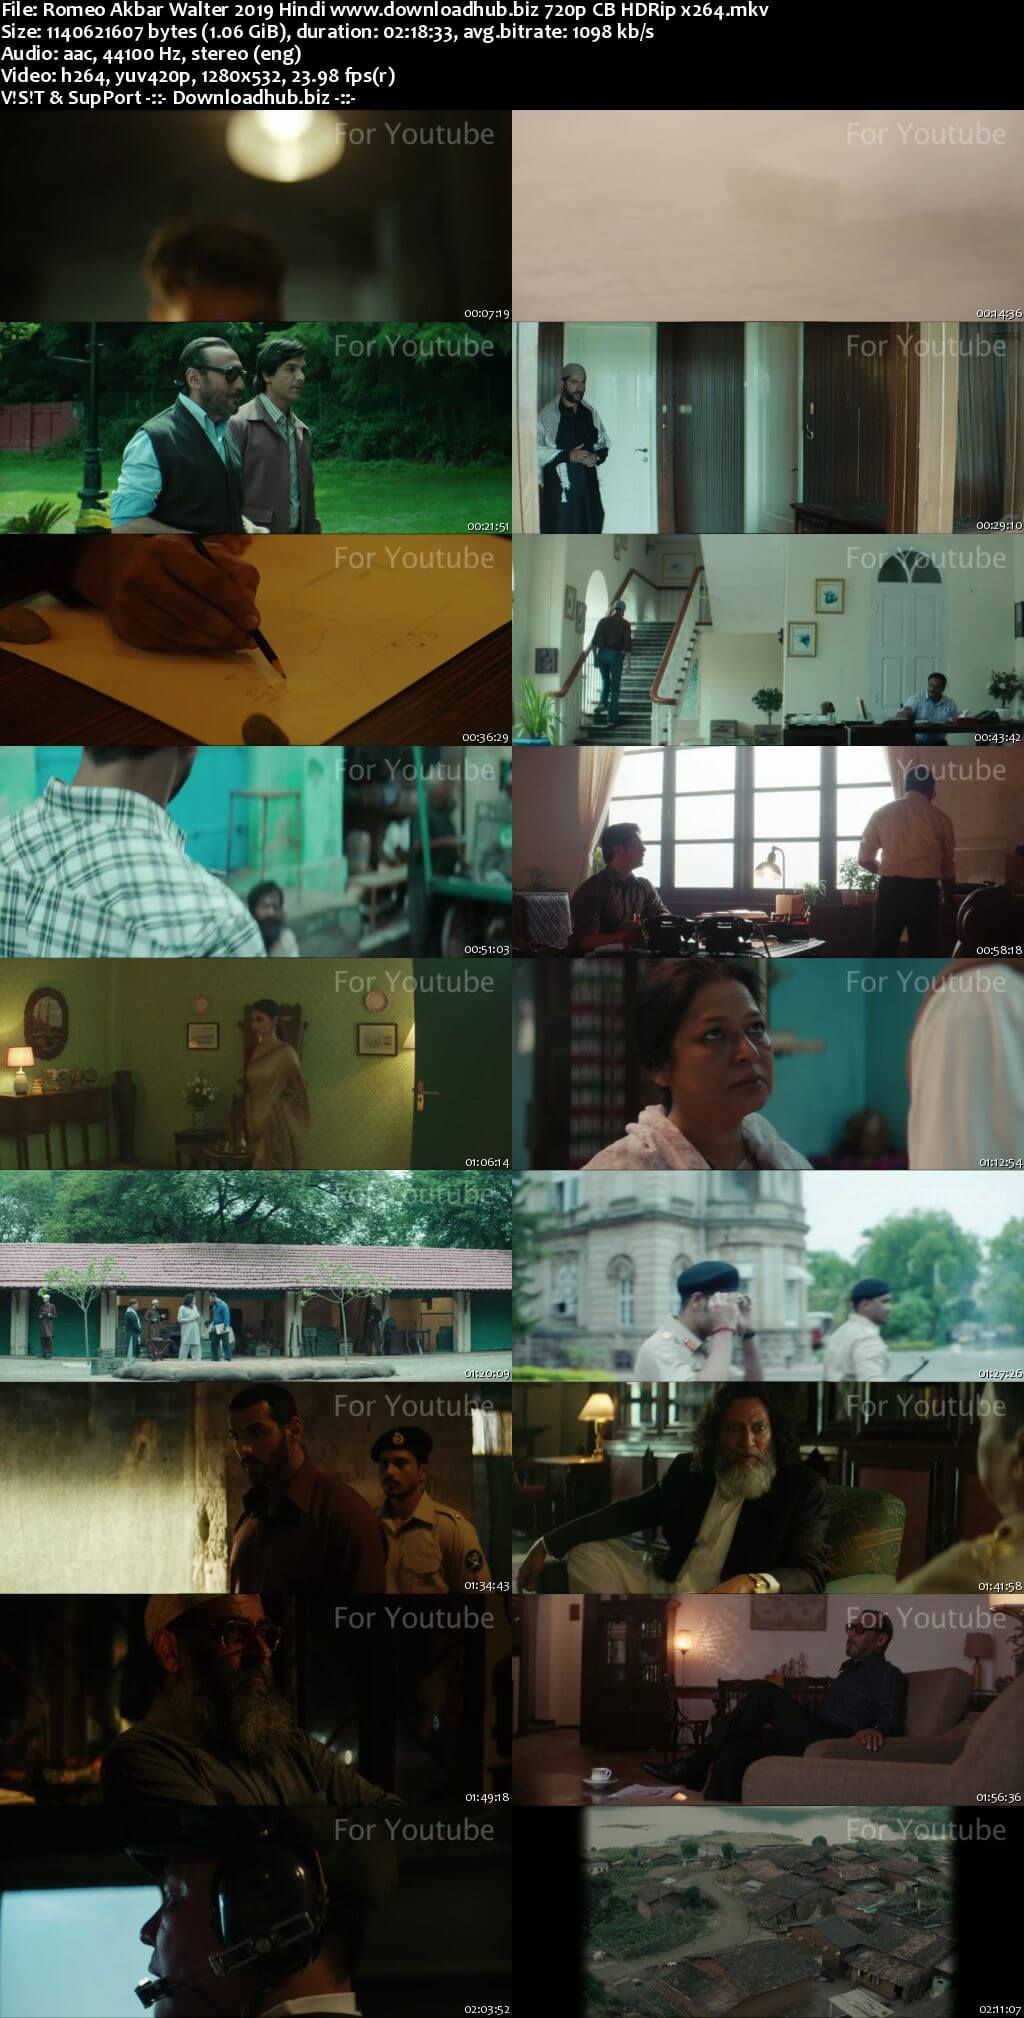 Romeo Akbar Walter 2019 Hindi 720p CB HDRip x264